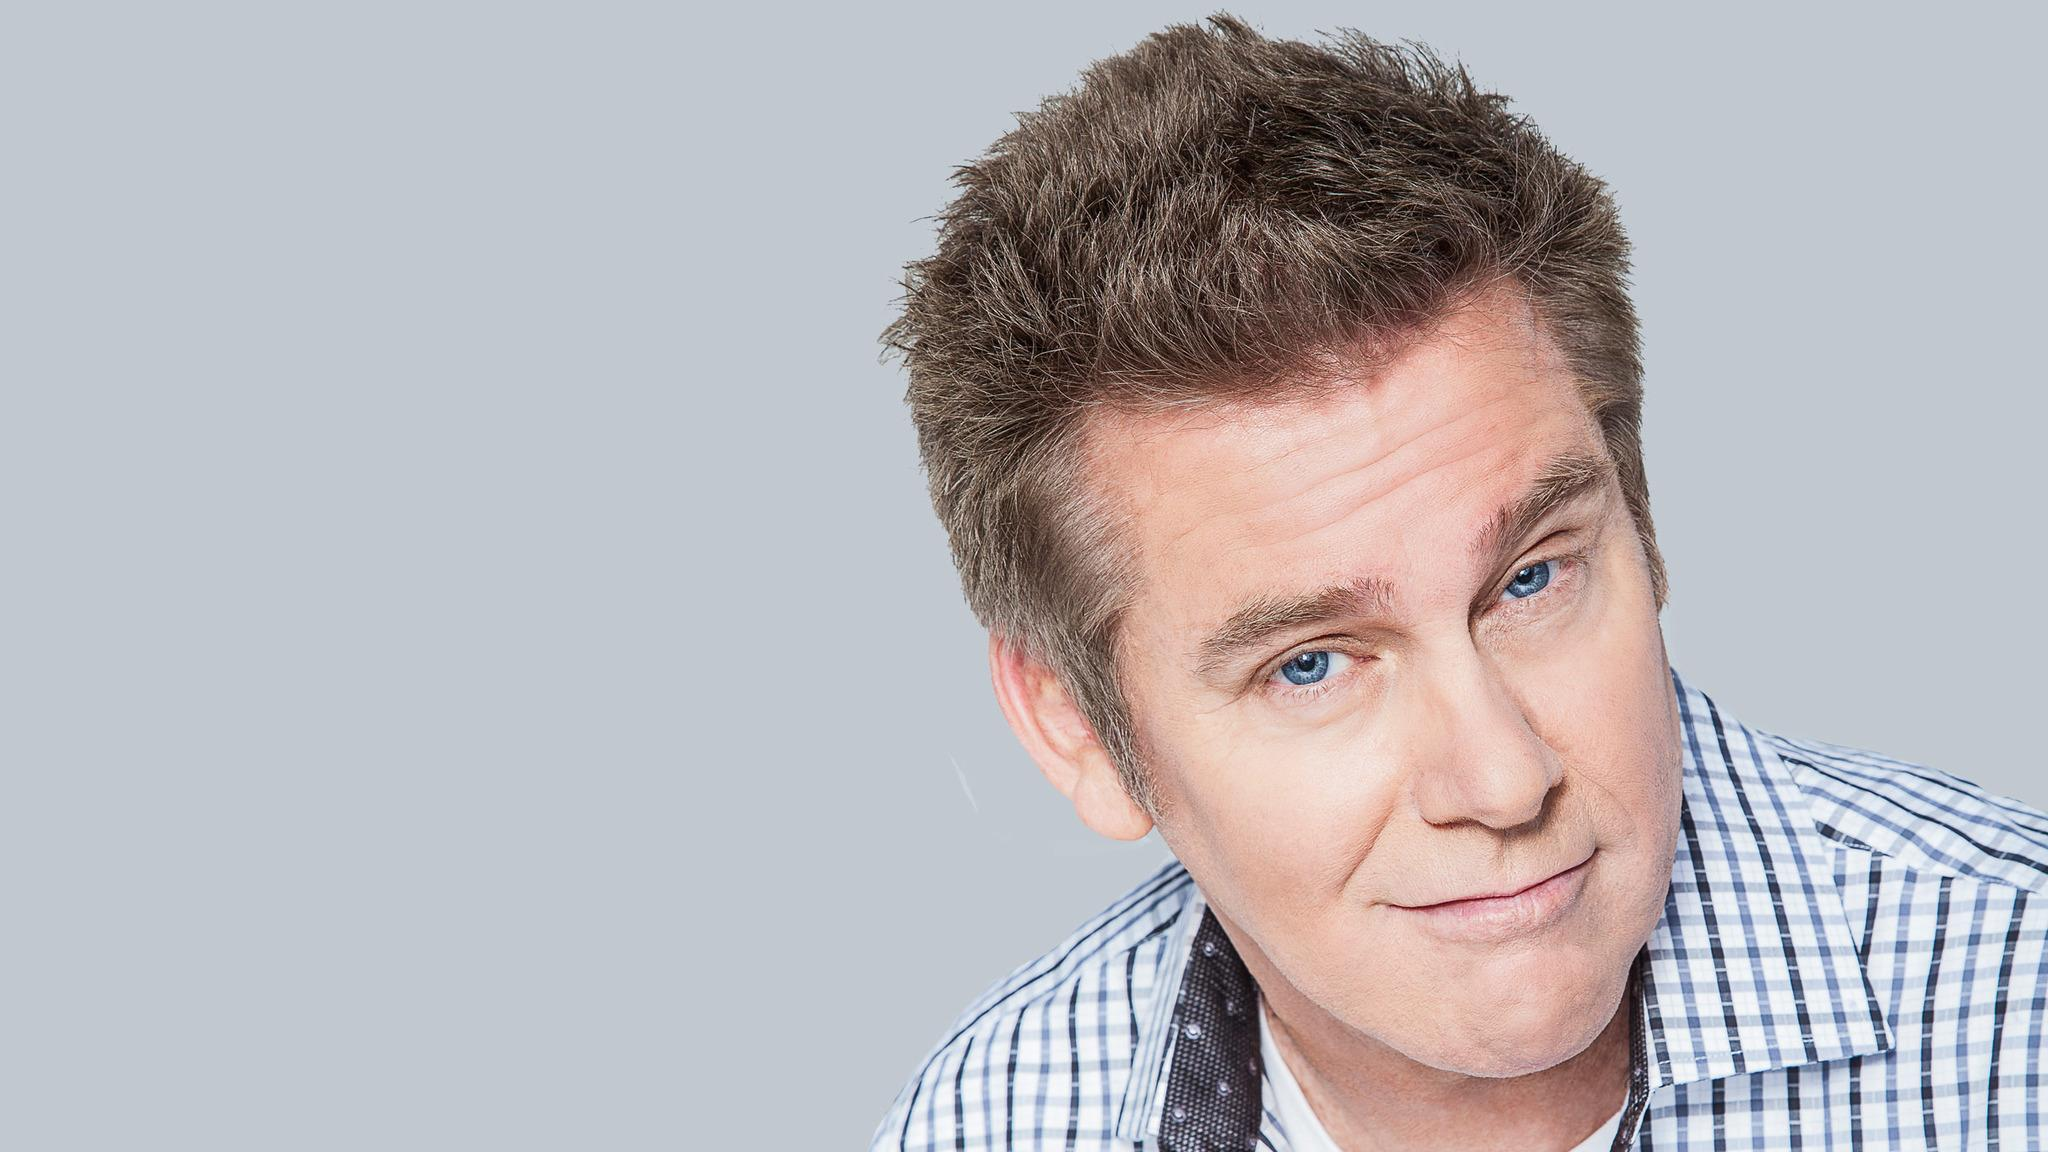 Brian Regan at Pikes Peak Center